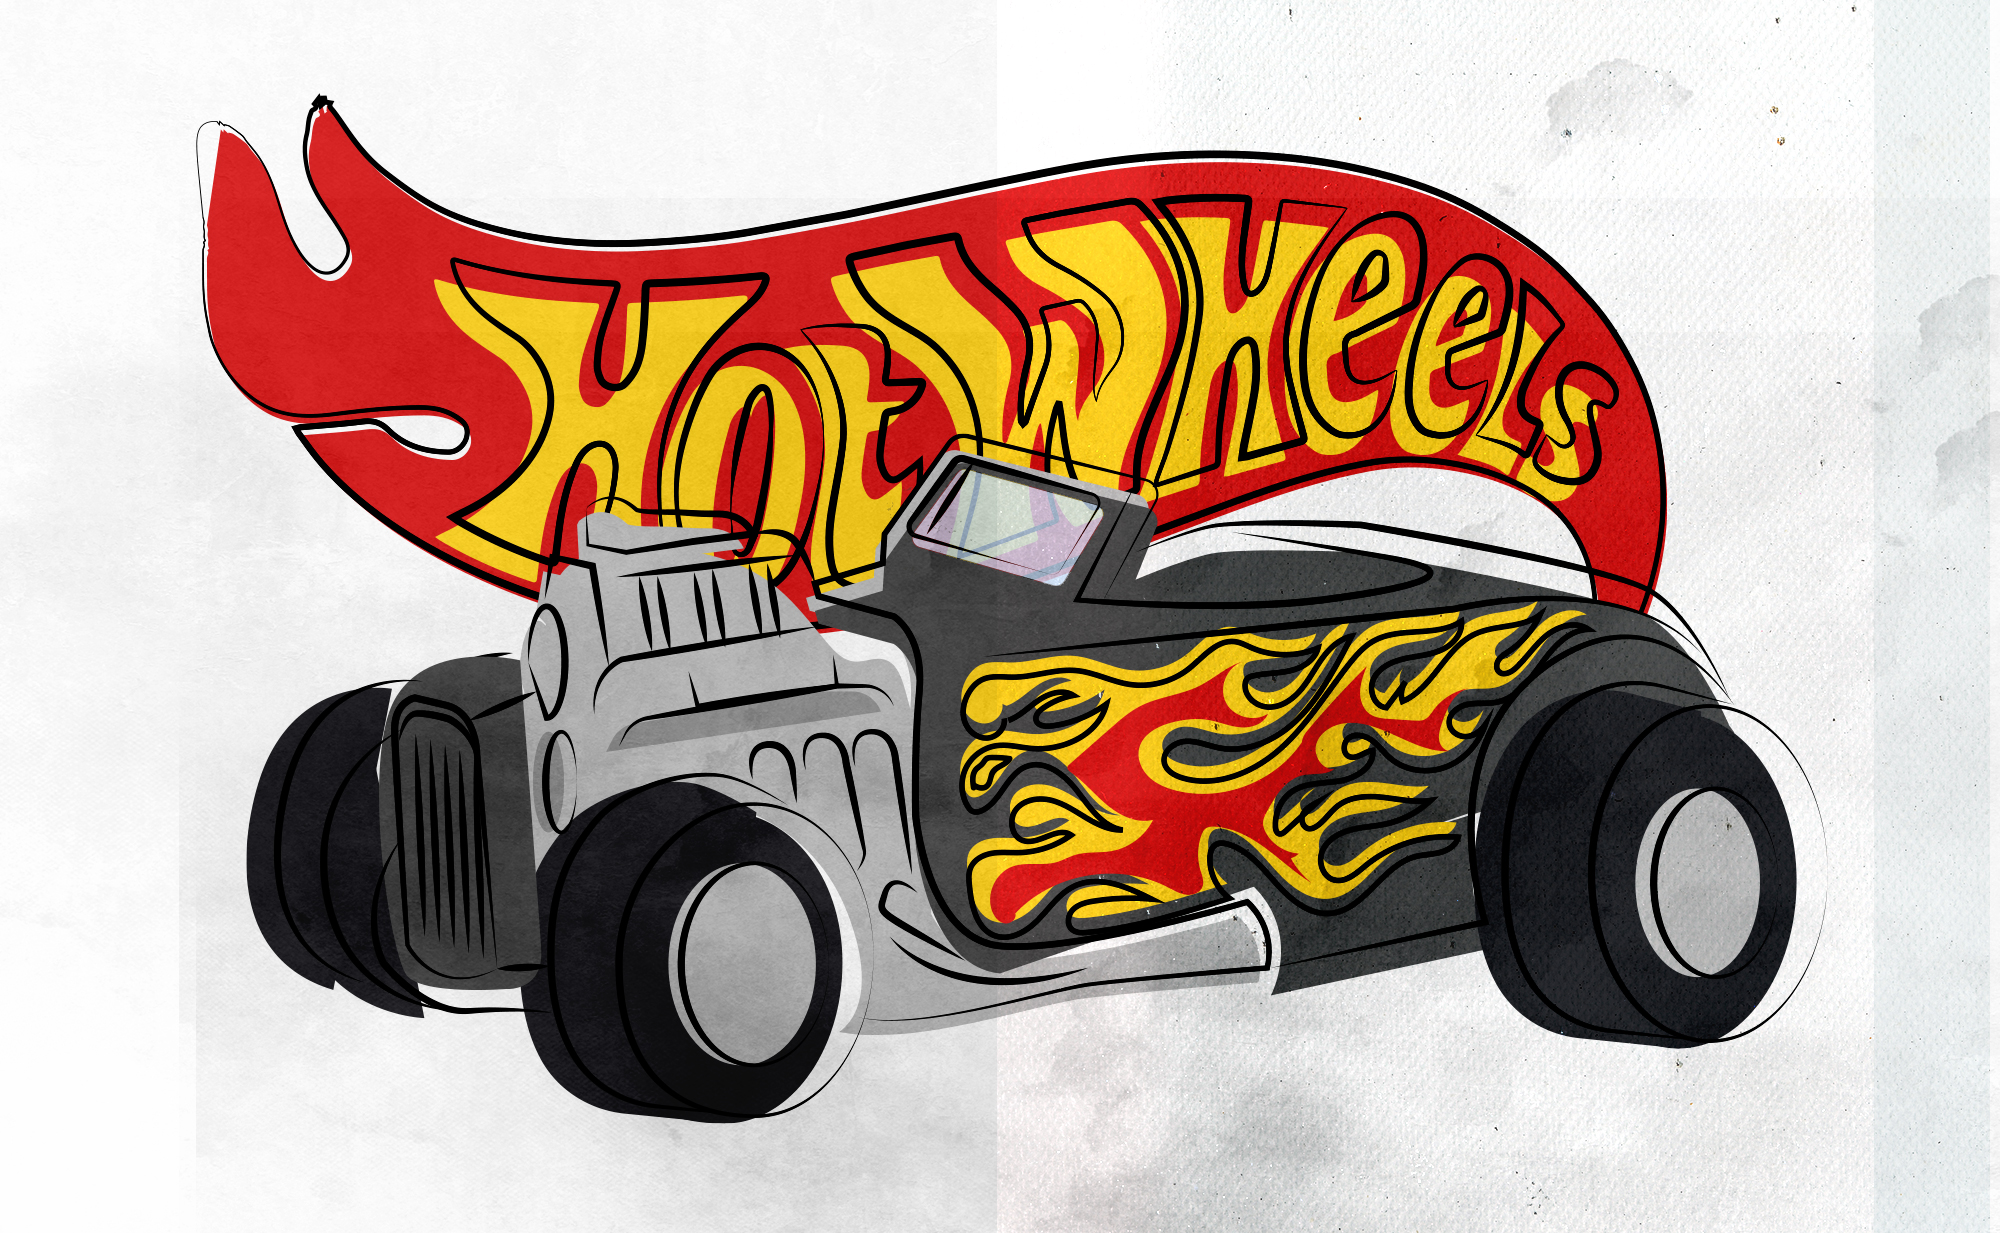 Illustration of a black Hot Wheels roadster with flames on the side in front of an illustrated Hot Wheels logo.